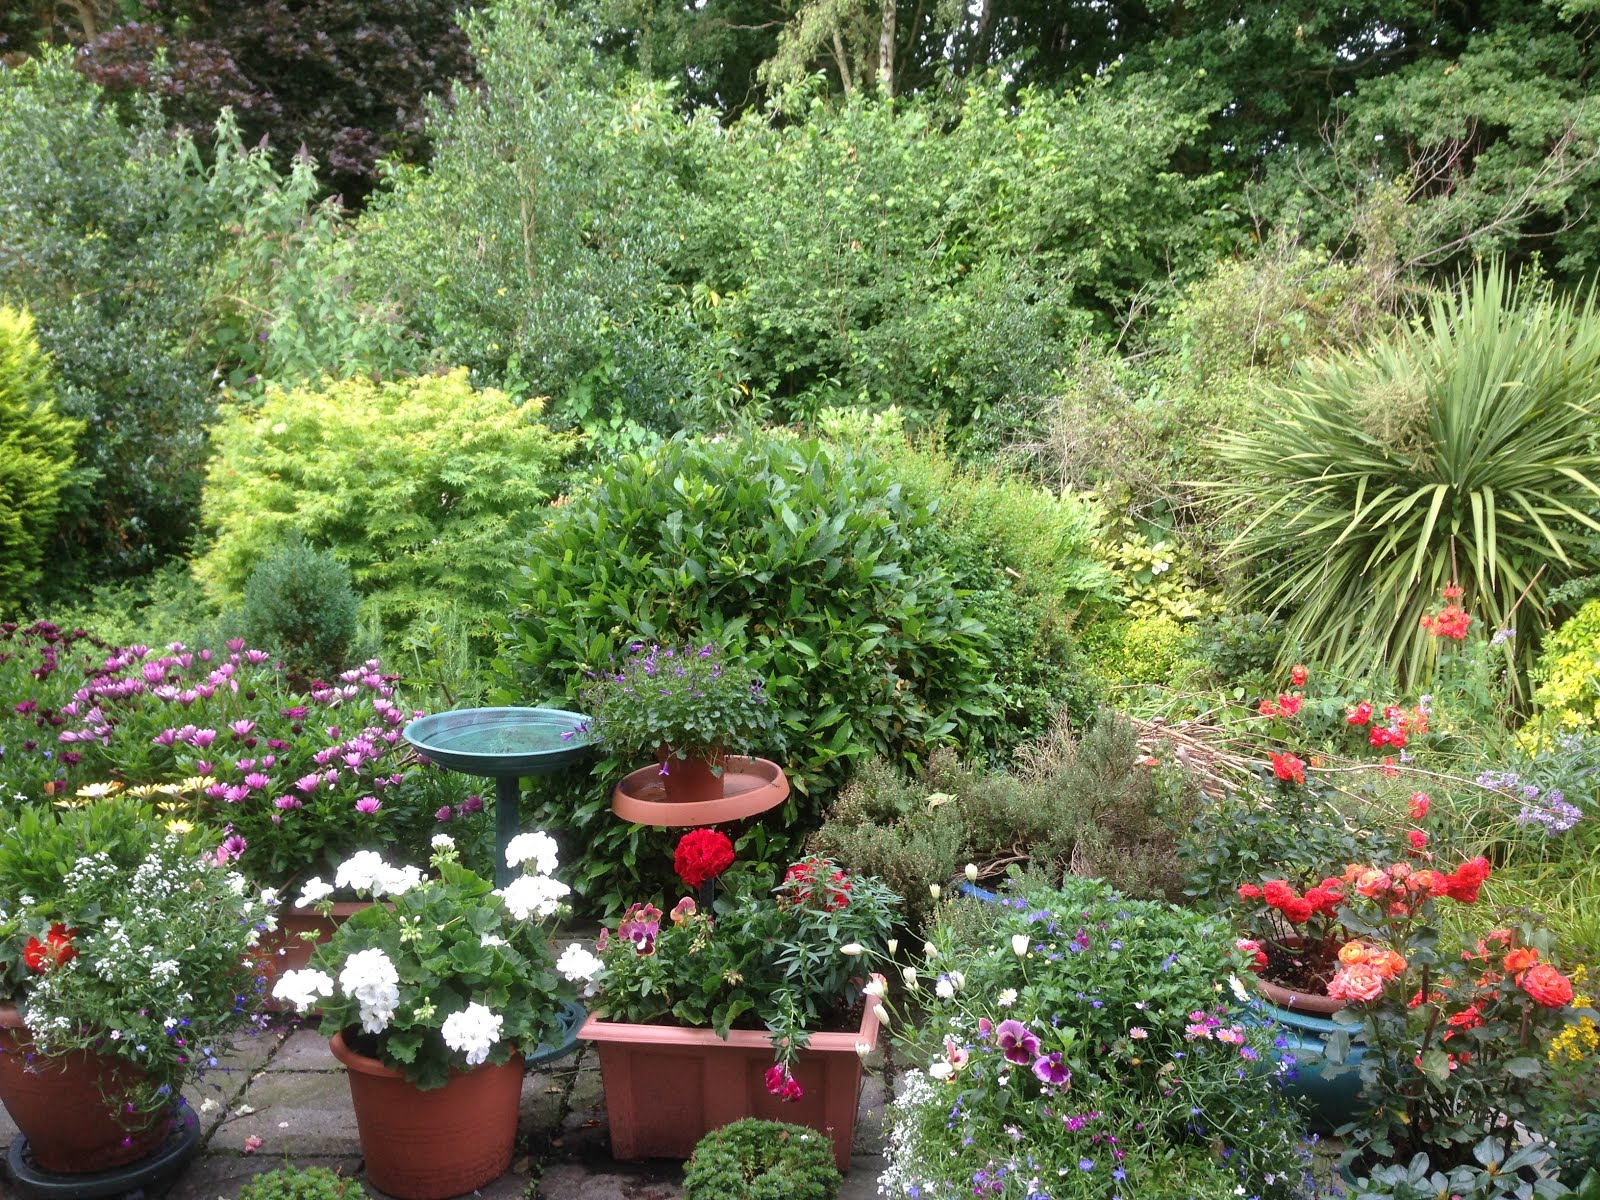 Summer view of the garden